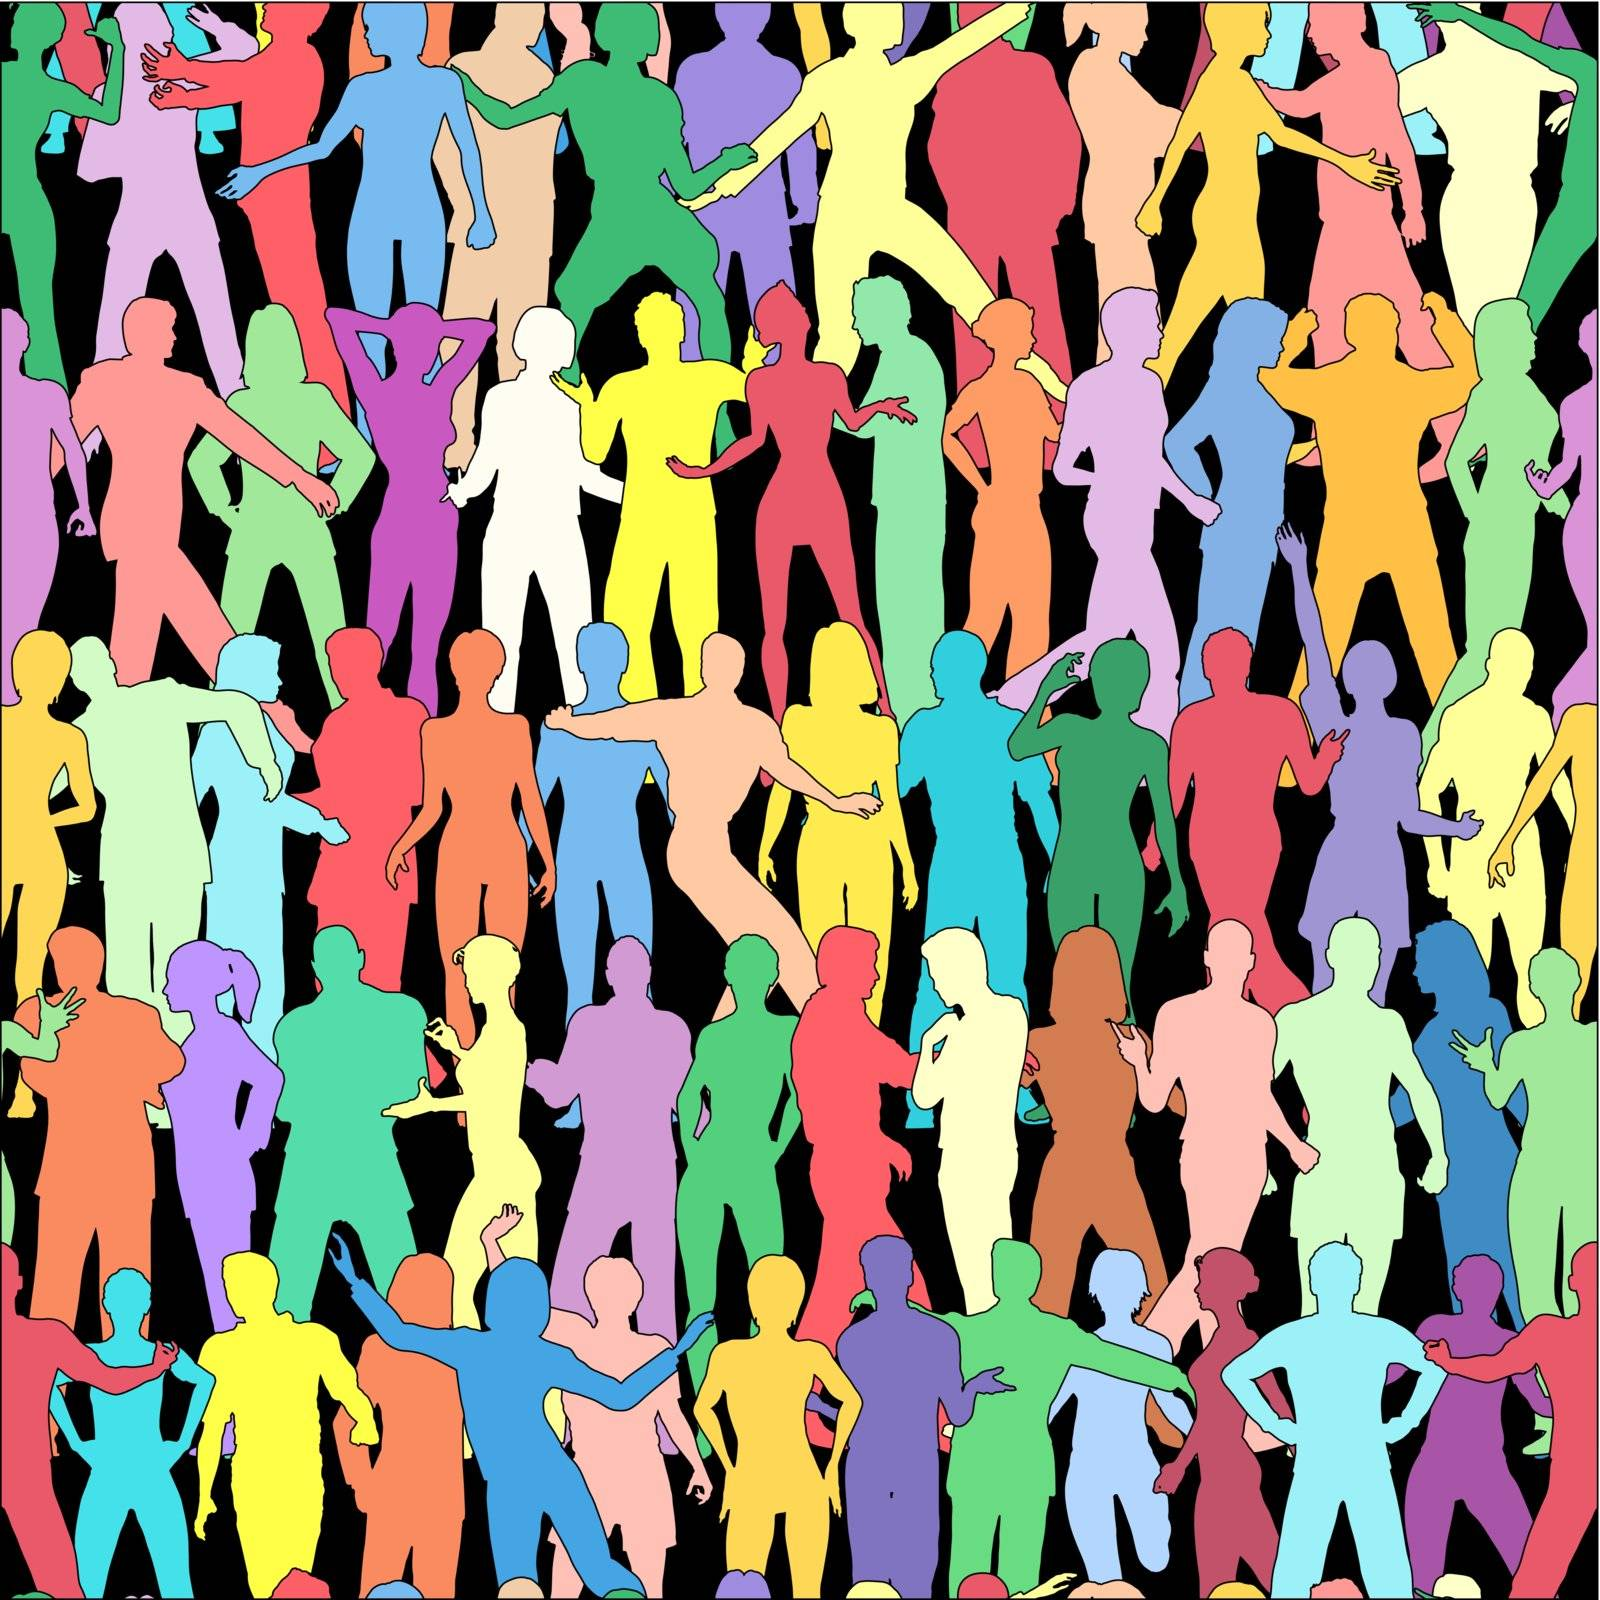 Seamless editable vector tile of people outlines